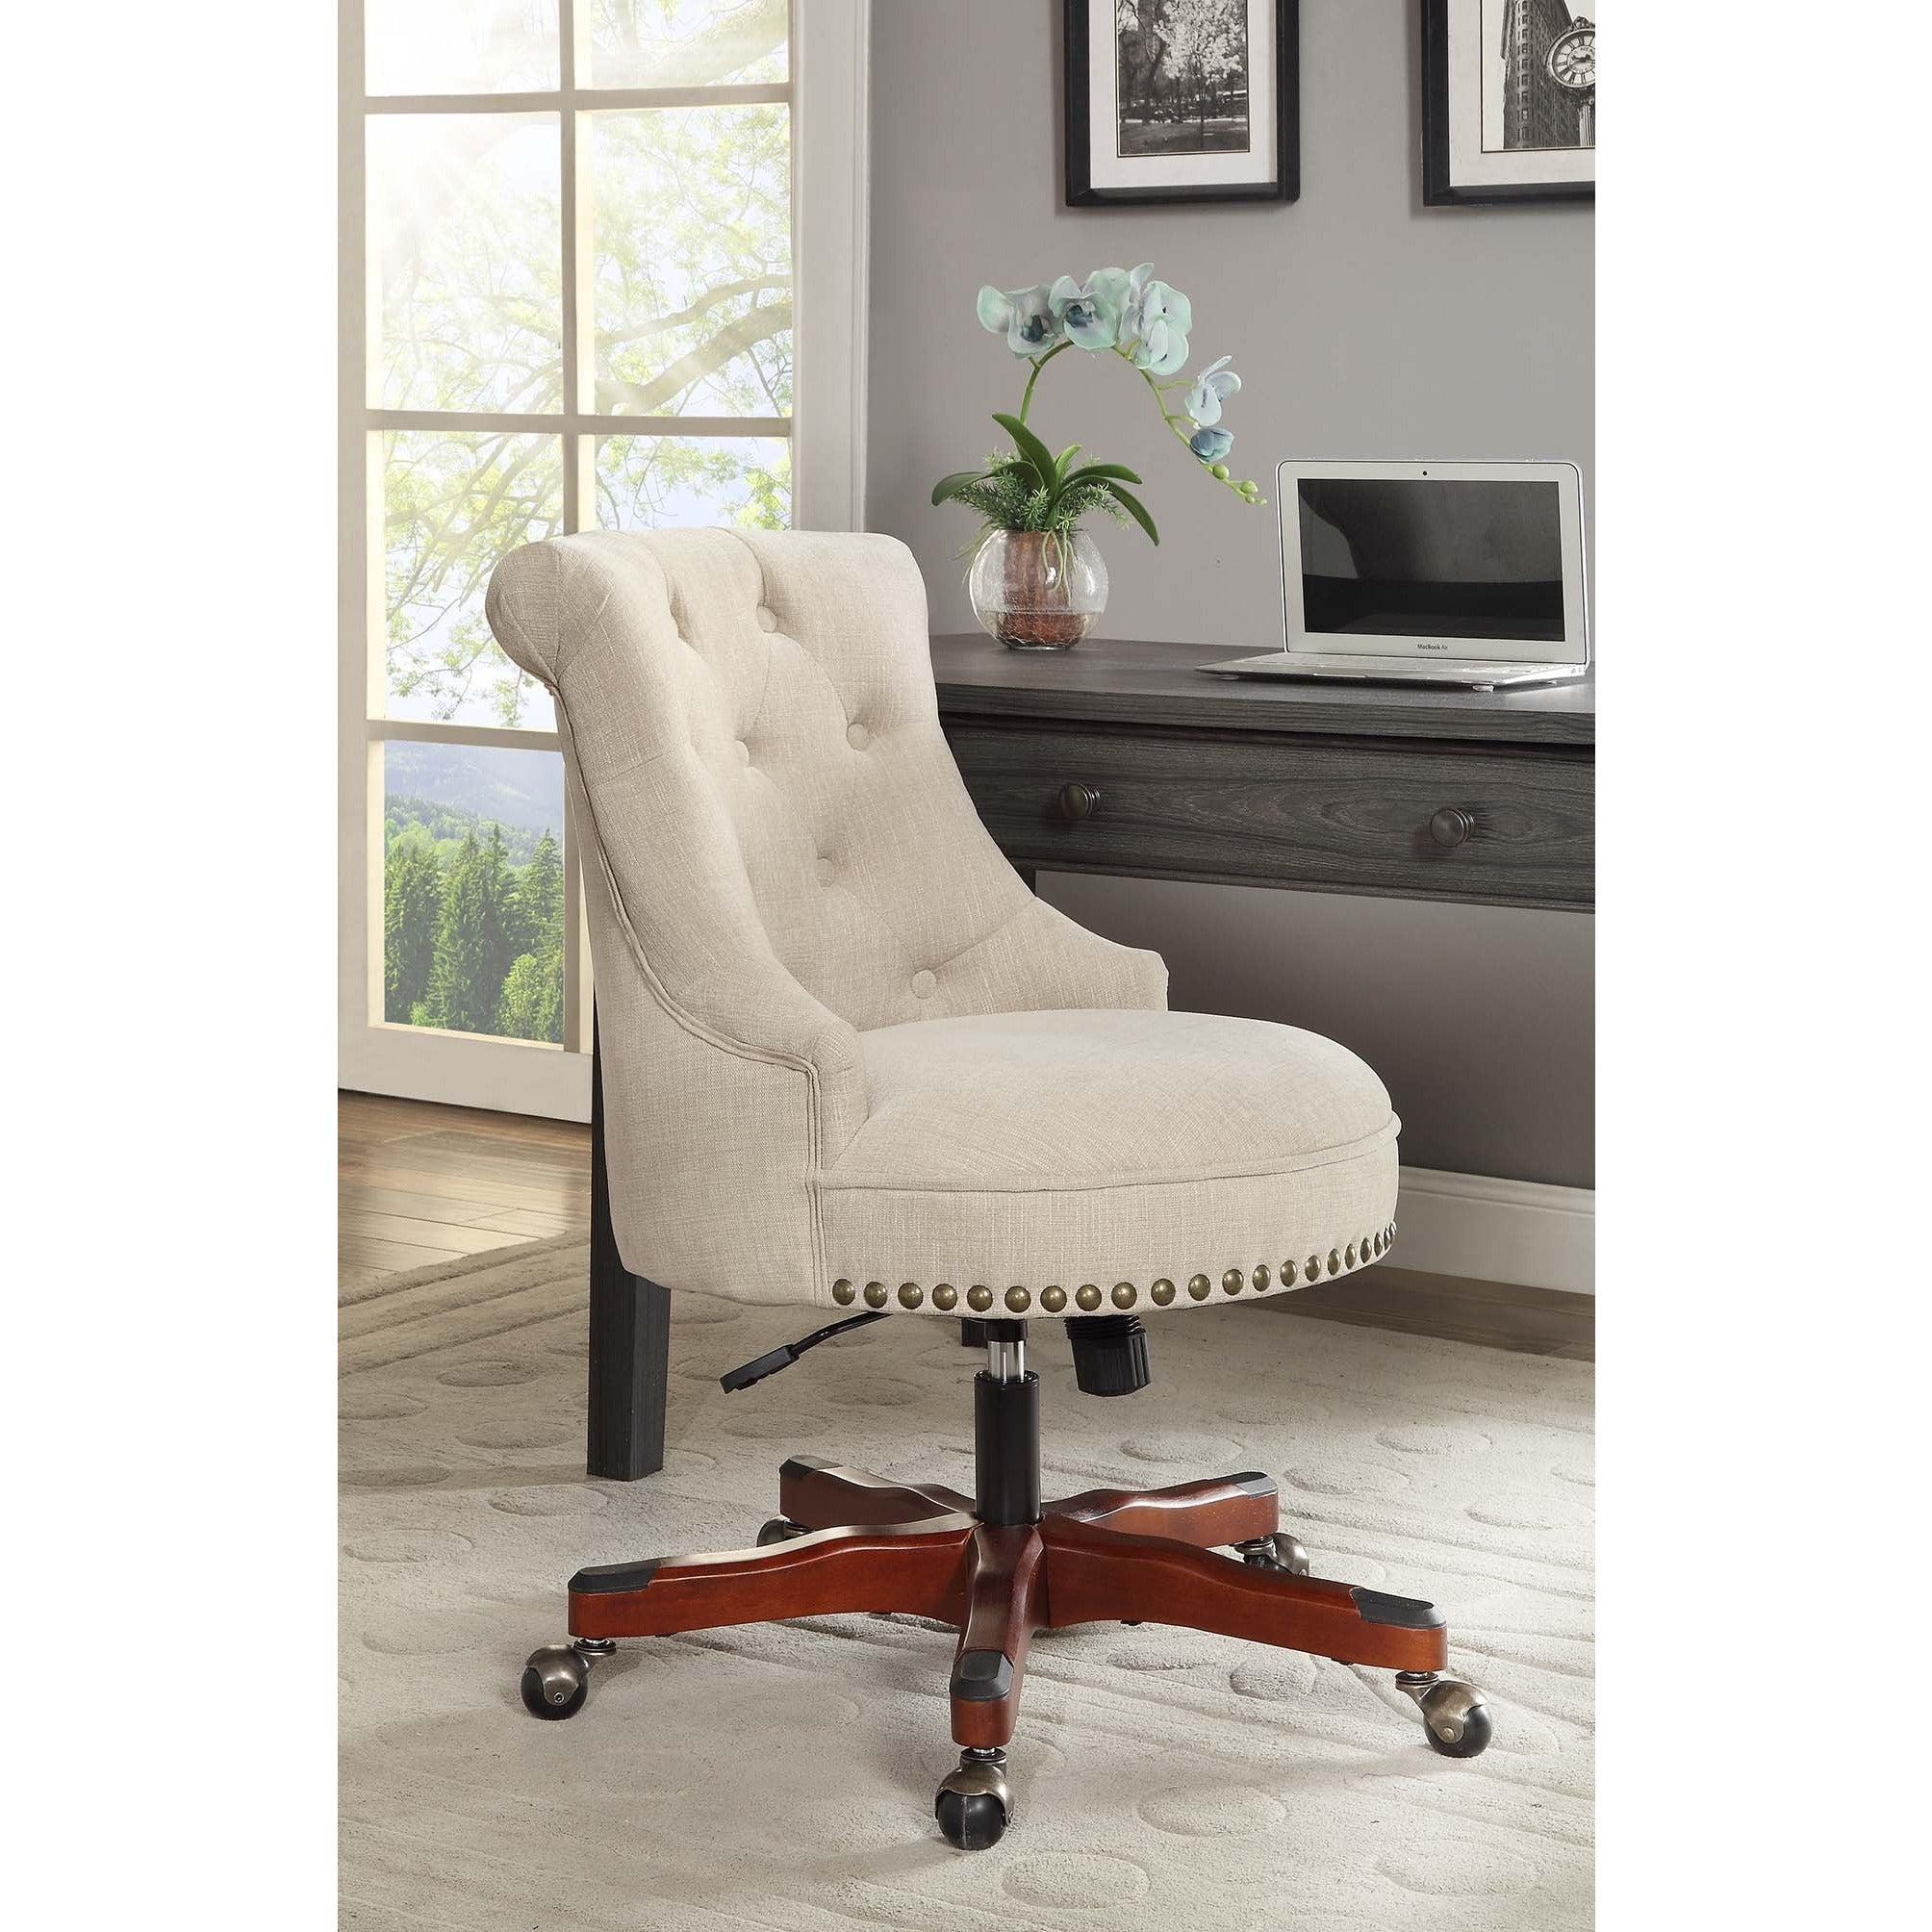 zuo furniture modern chair p office white boutique